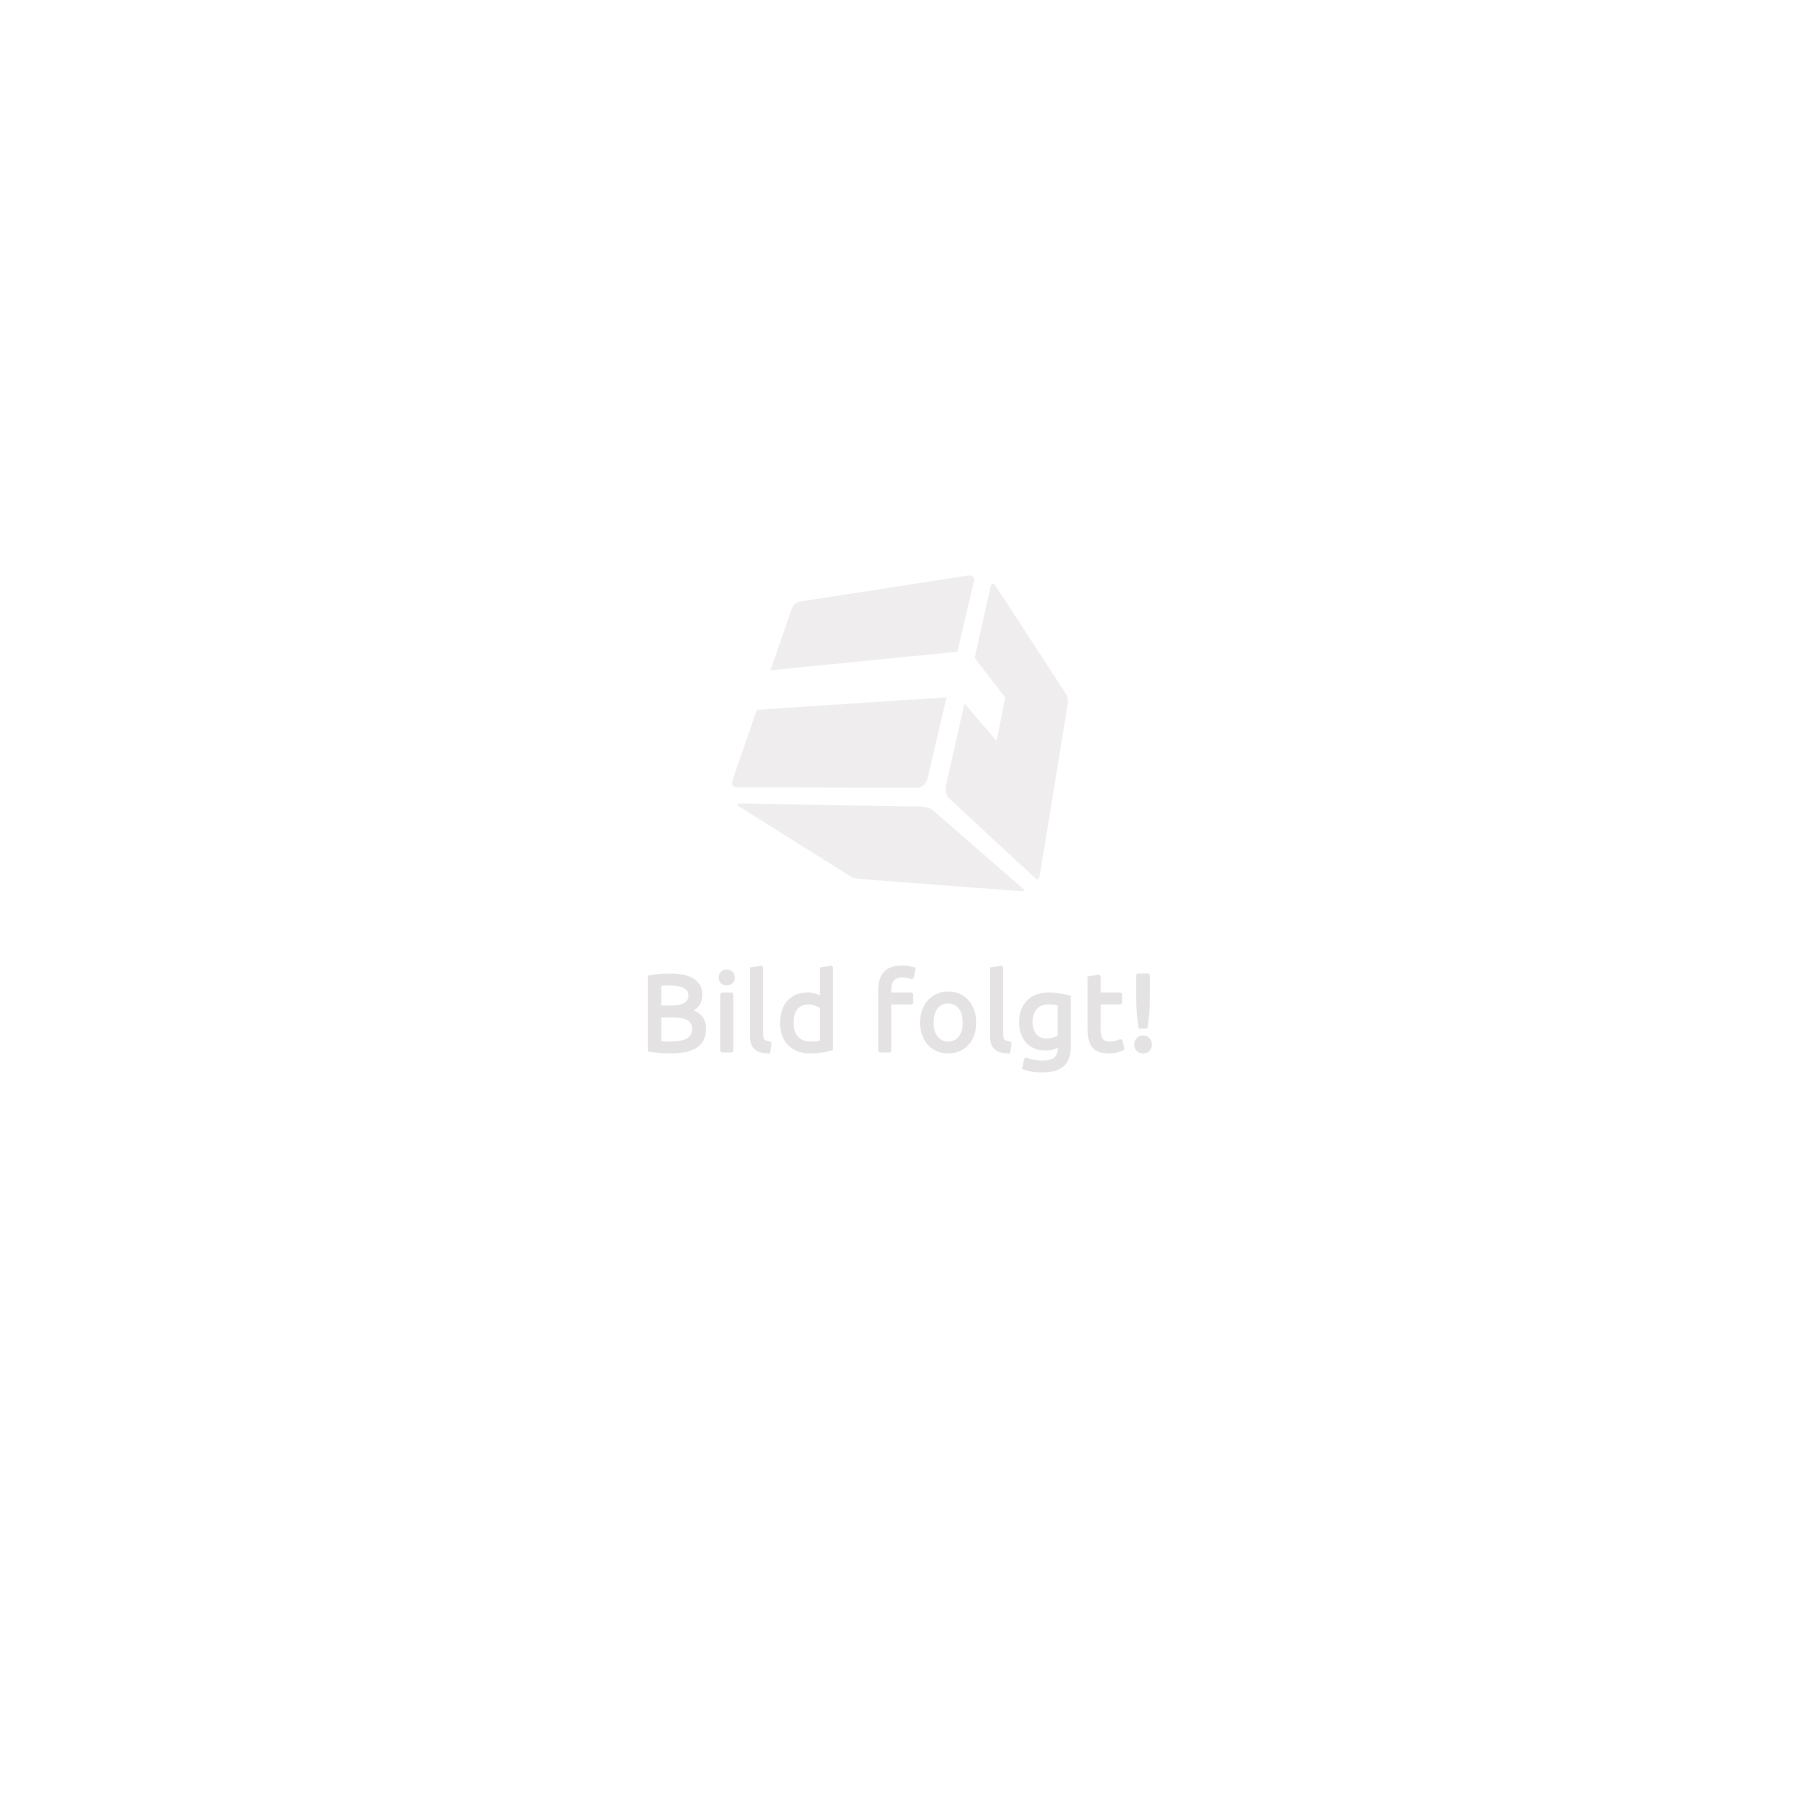 Shop Cheap Shower Caddy Stainless Steel Online Tectake